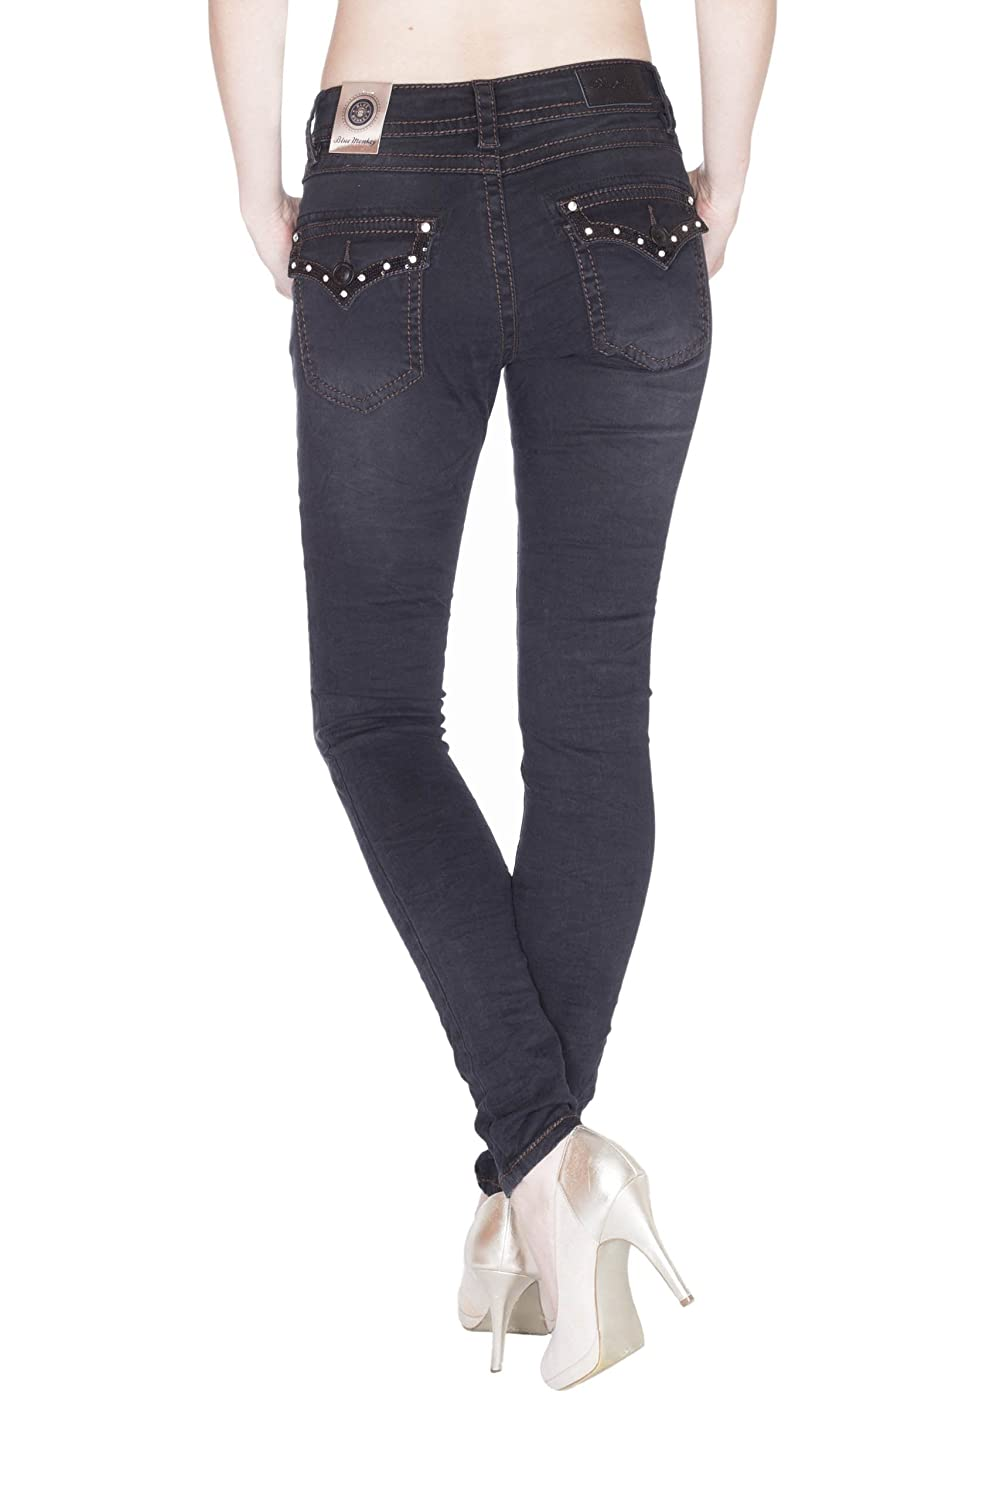 Blue Monkey Damen Jeans mit Strass & Pailletten Romy 3693